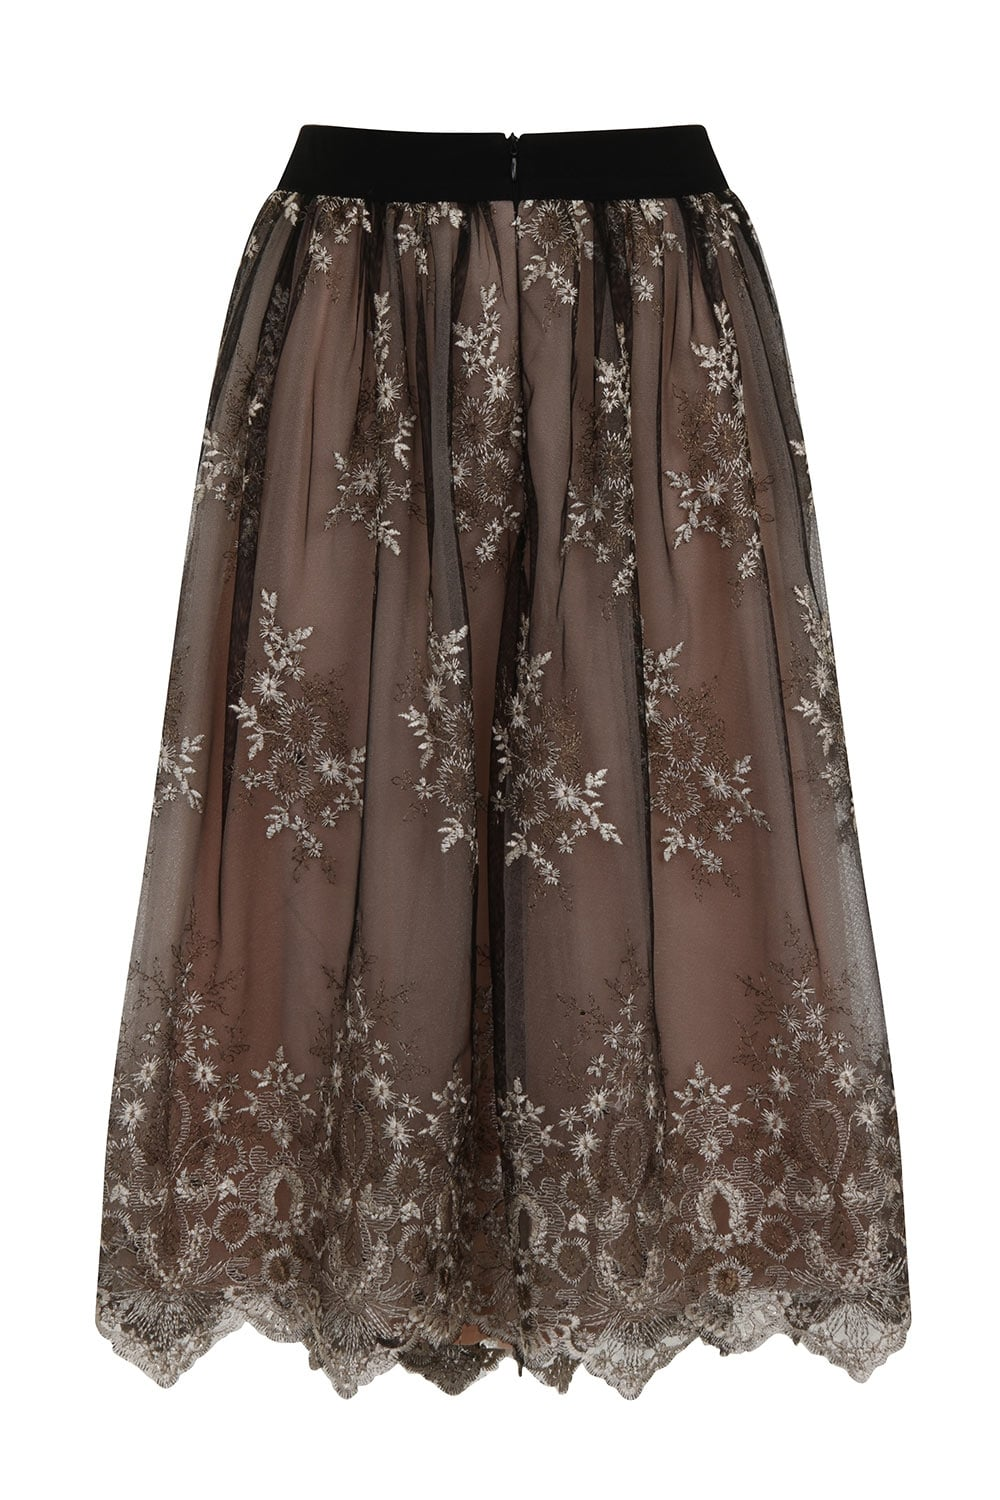 black and mocca lace overlay skirt